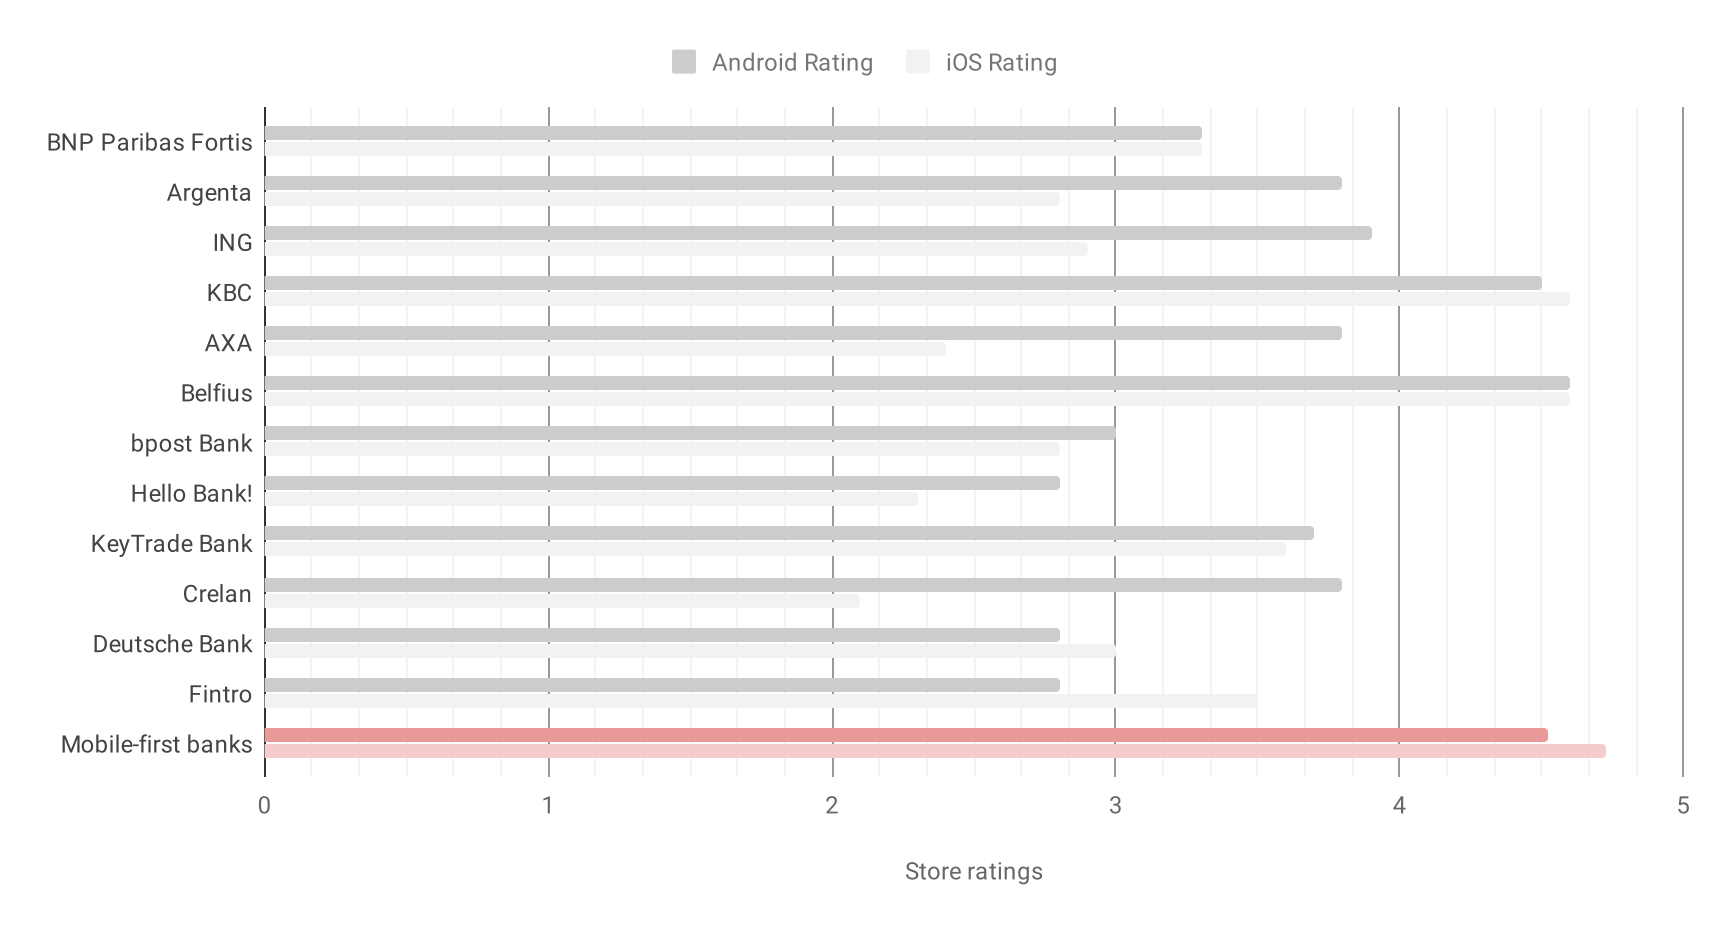 Graph 1: Belgian banks vs average Mobile-first Challengers store ratings Source: Ratings from Google Play Store and Apple App Store, 25 April 2019